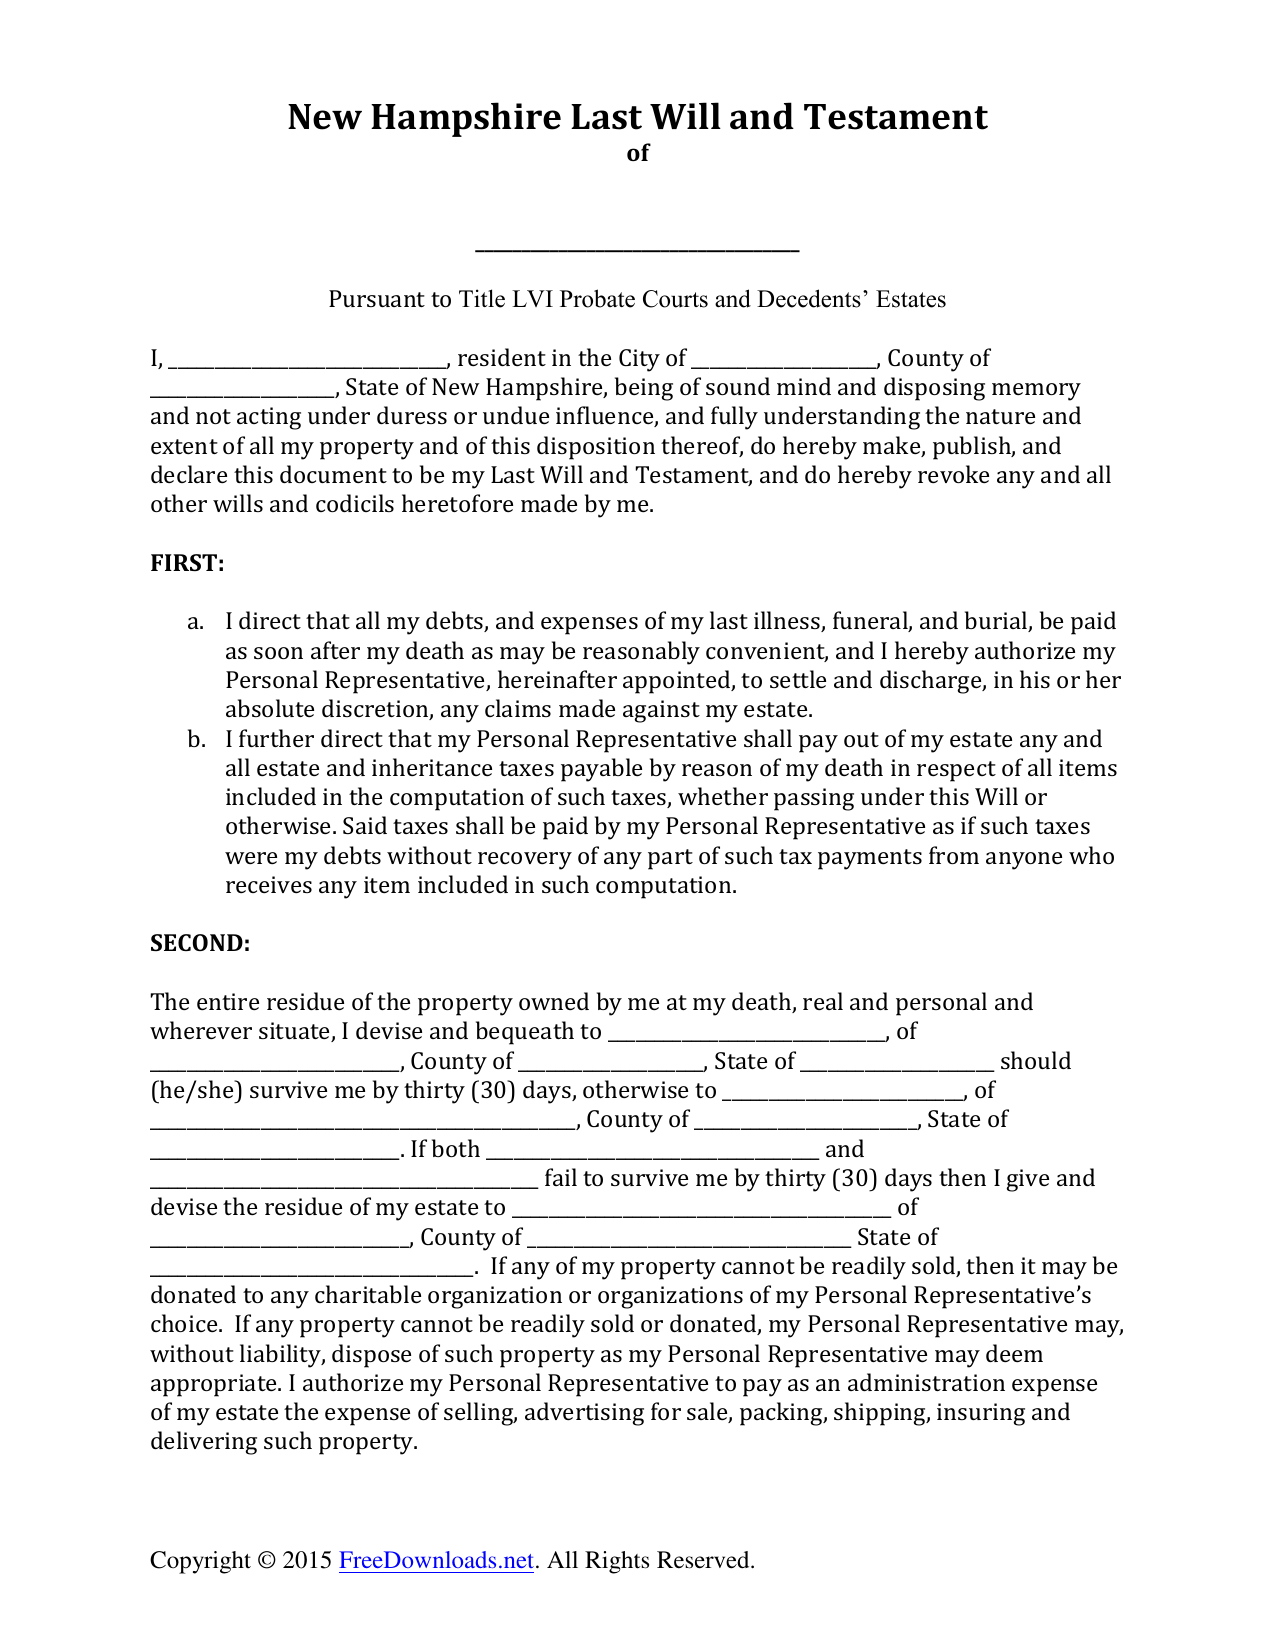 picture about Free Printable Last Will and Testament Blank Forms referred to as Obtain Refreshing Hampshire Previous Will and Testomony Variety PDF